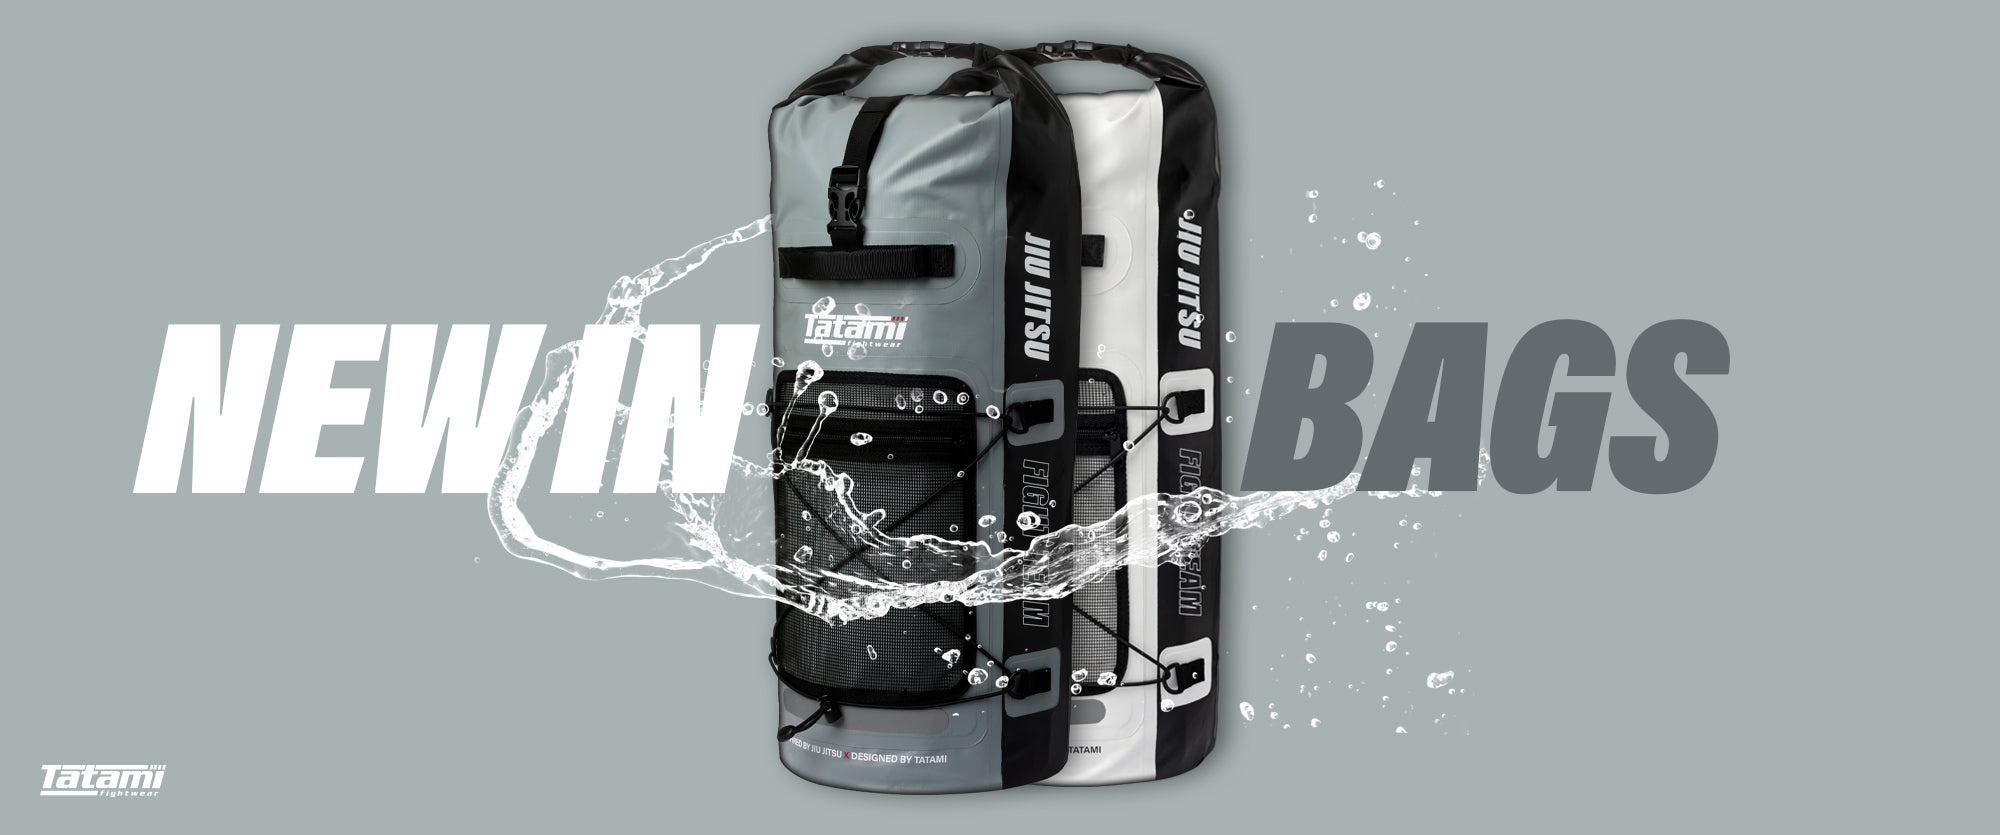 New In Jiu Jitsu Gear Bag - Drytech